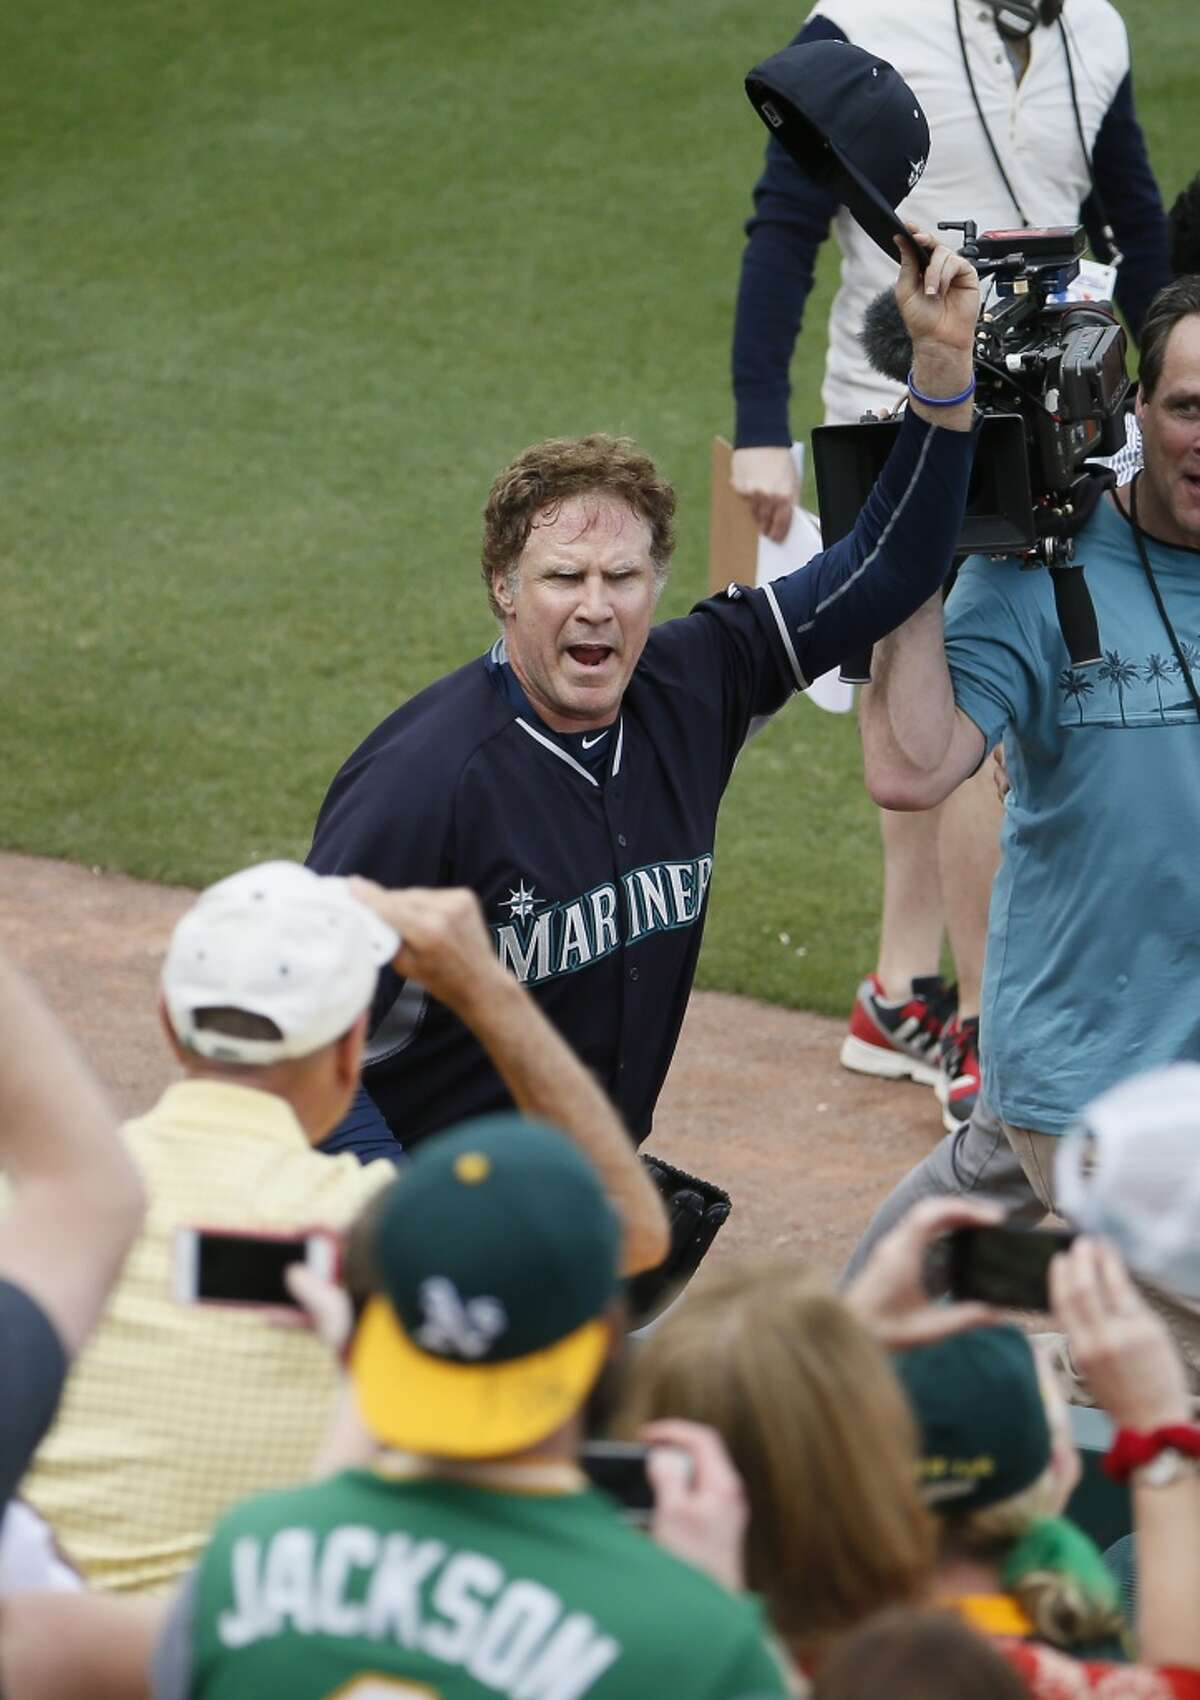 Actor Will Ferrell acknowledges the fans after playing second base for the Seattle Mariners during the second inning of a spring training baseball game against the Oakland Atletics, Thursday, March 12, 2015, in Mesa, Ariz. The comedian plans to play every position while making appearances at five Arizona spring training games on Thursday. (AP Photo/Matt York)